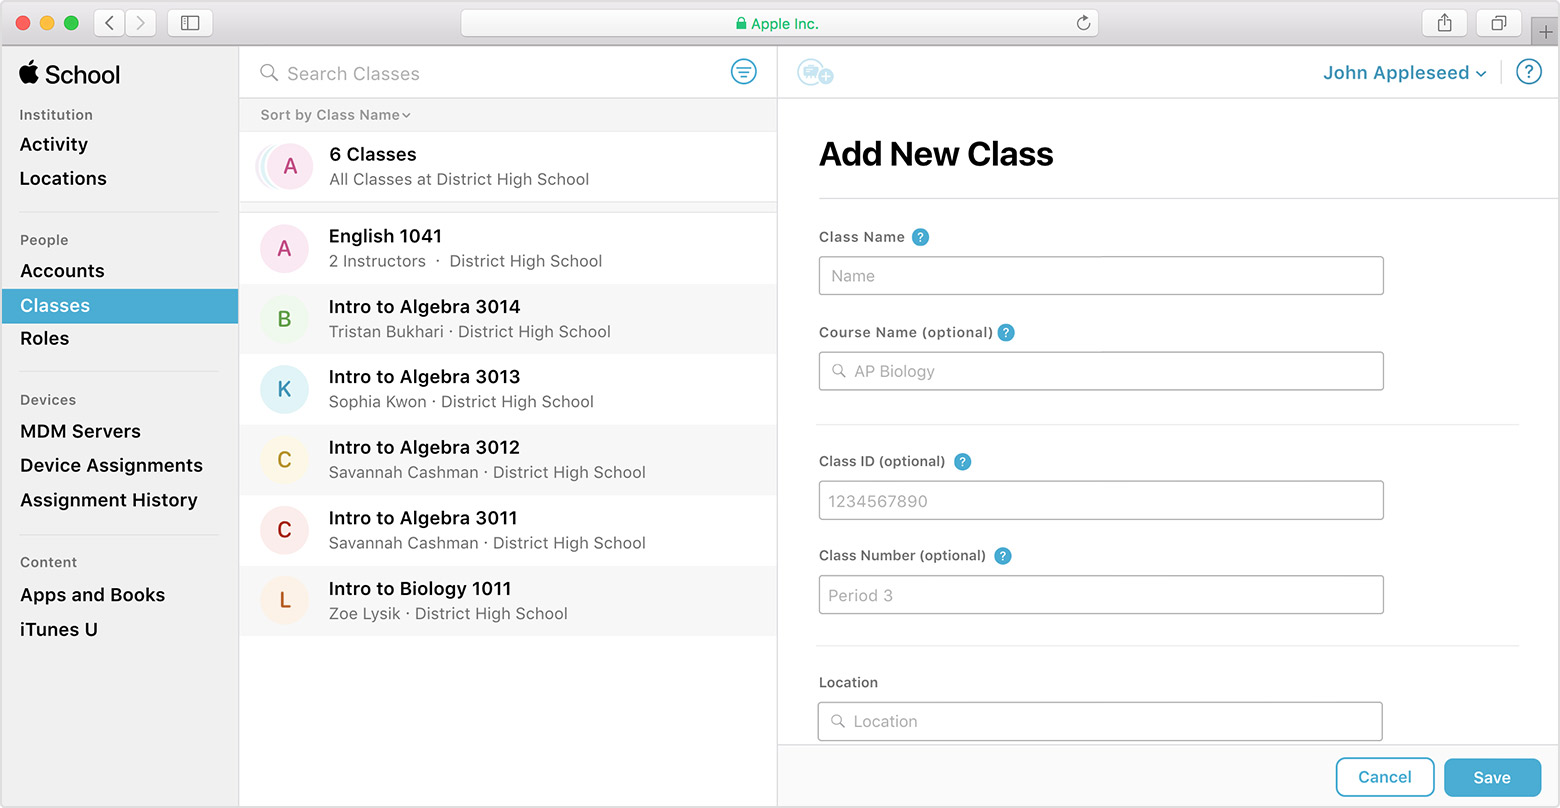 Create and edit classes for Schoolwork in Apple School